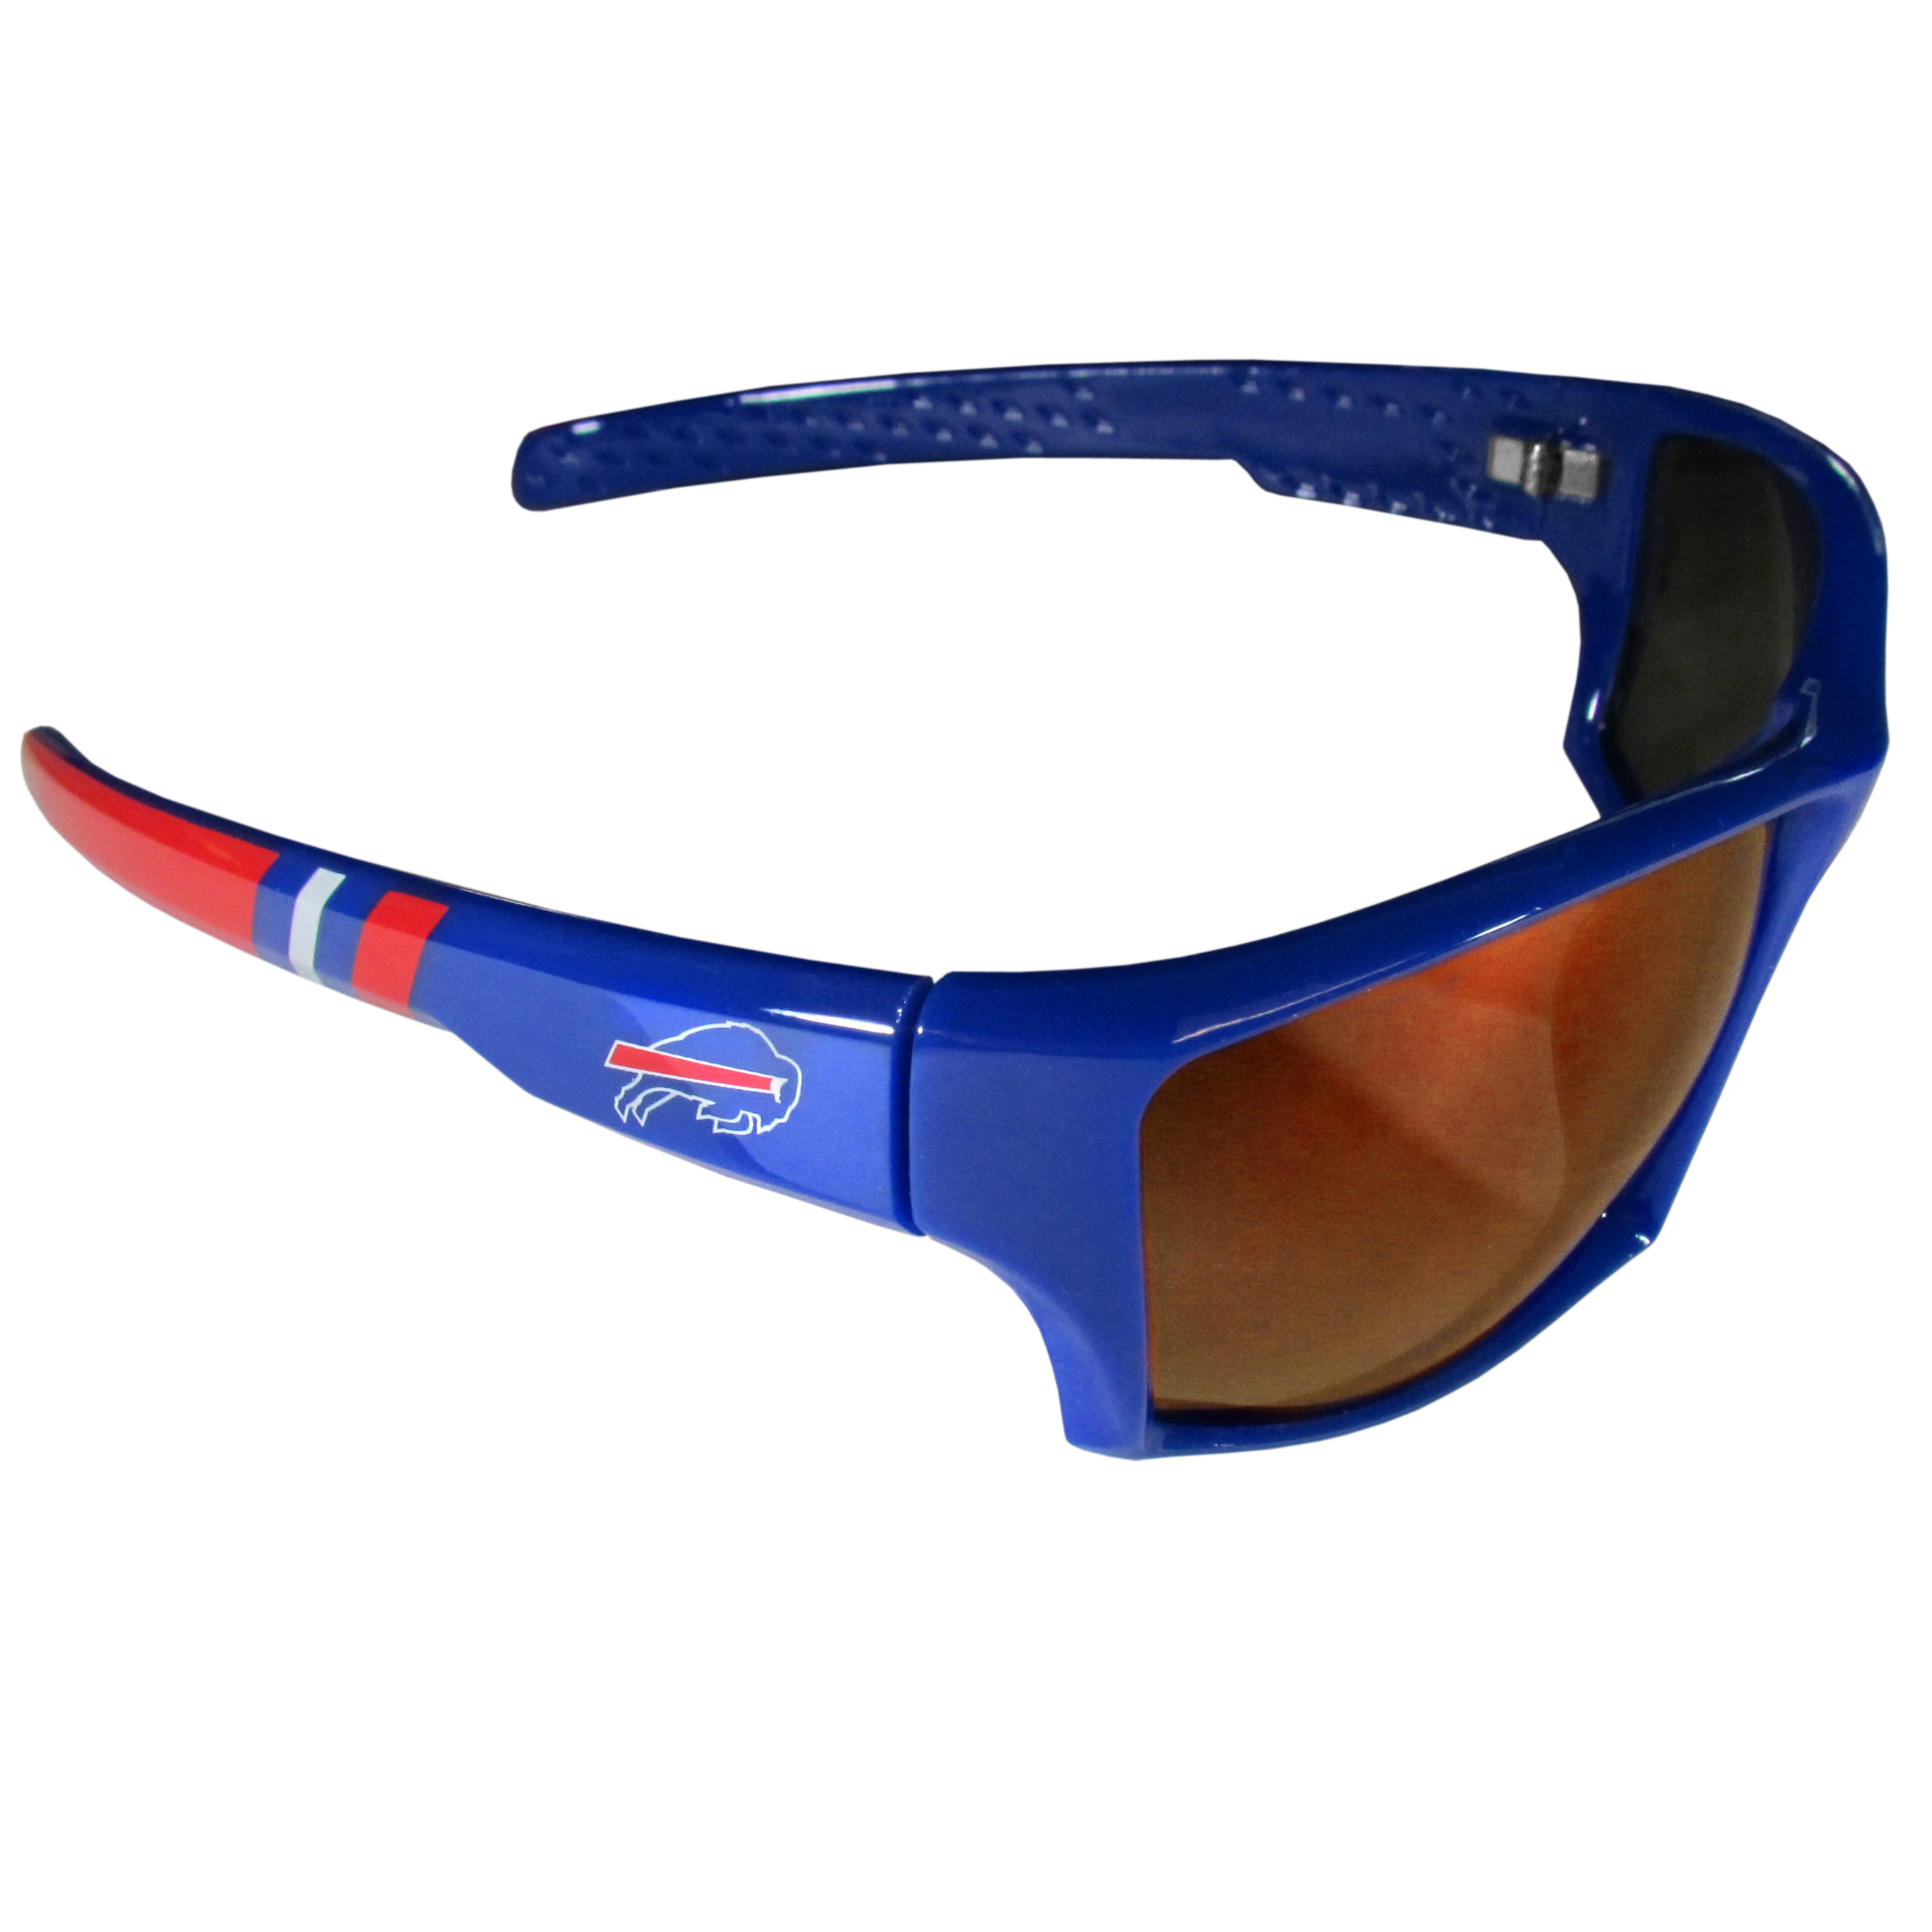 Buffalo Bills Edge Wrap Sunglasses - Be an icon of edgy style while you're in the stadium cheering your Buffalo Bills to victory with our polarized wrap sunglasses that feature 100% UVA/UVB rating for maximum UV protection. The light-weight frames are built to last with flex hinges for comfort and durability which make them perfect for driving or just lounging by the pool. The colorful rubber grips on the arms of these fashionable sunglasses make them perfect for someone with an active lifestyle. Whether you are hiking, fishing, boating, running on the beach, golfing or playing your favorite sport these designer frames will set you apart. Our edge wrap sunglasses are true quality eyewear at an affordable price. The wrap style frames come with team colored stripes and team logos so you can show off your die-hard team pride while protecting your eyes from those bright sun rays.